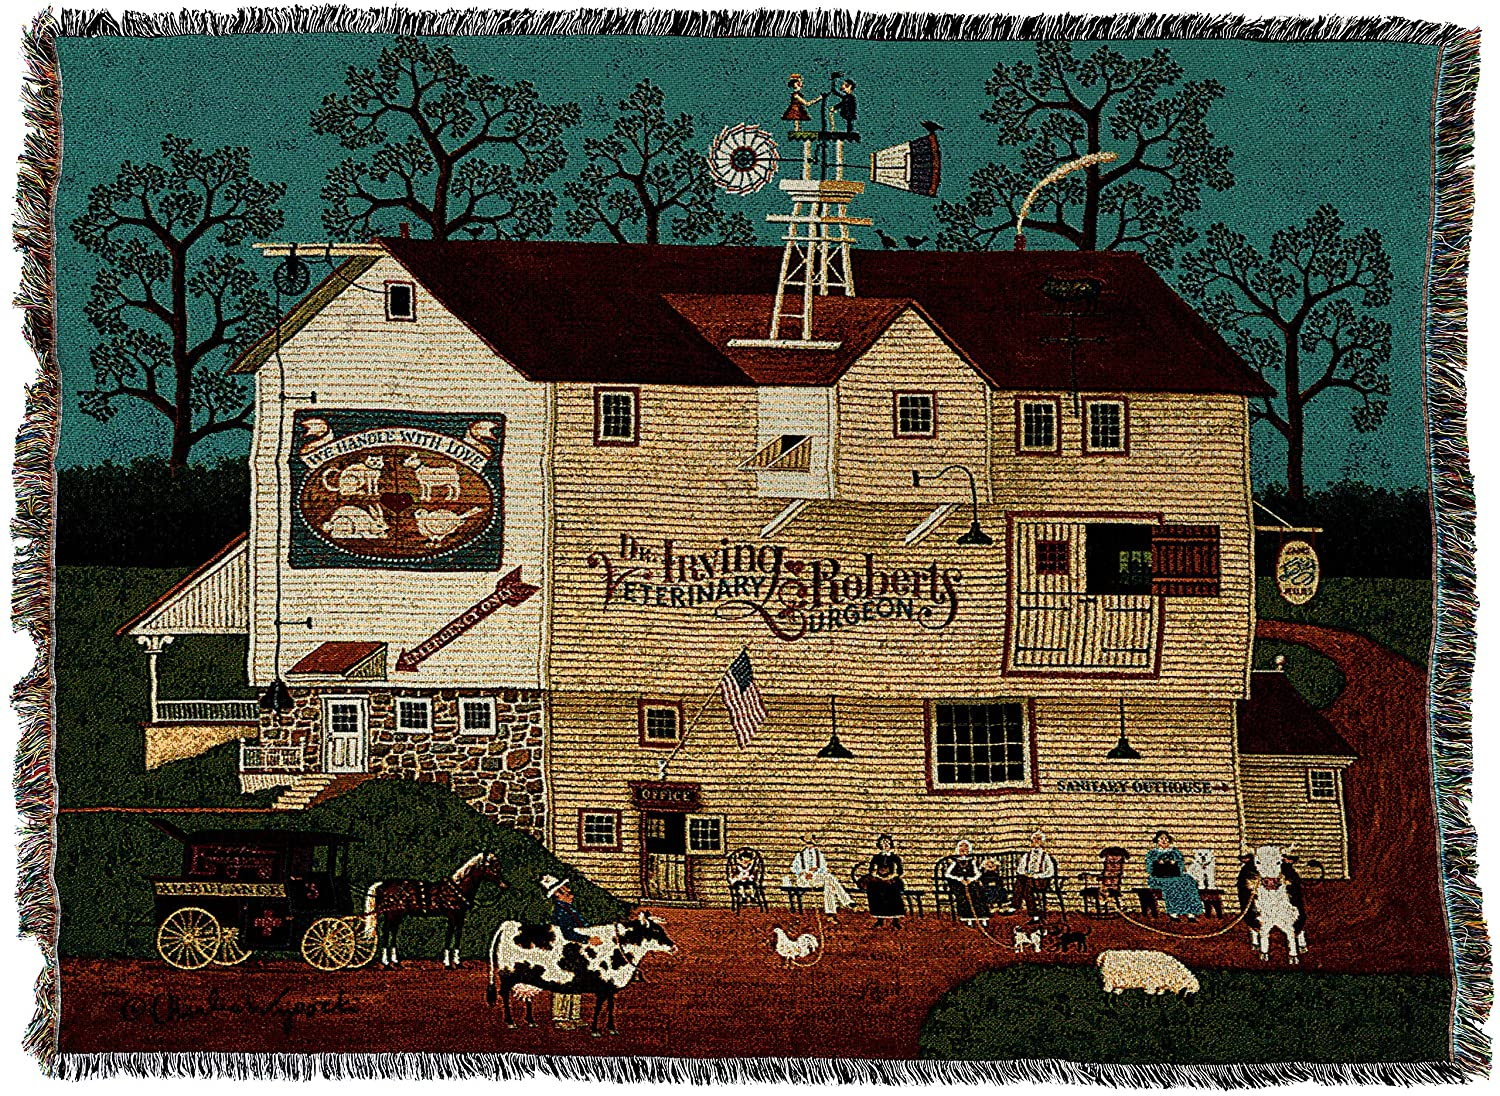 Next Tapestry Throw Blanket by Artist Charles Wysocki B071NHQK43